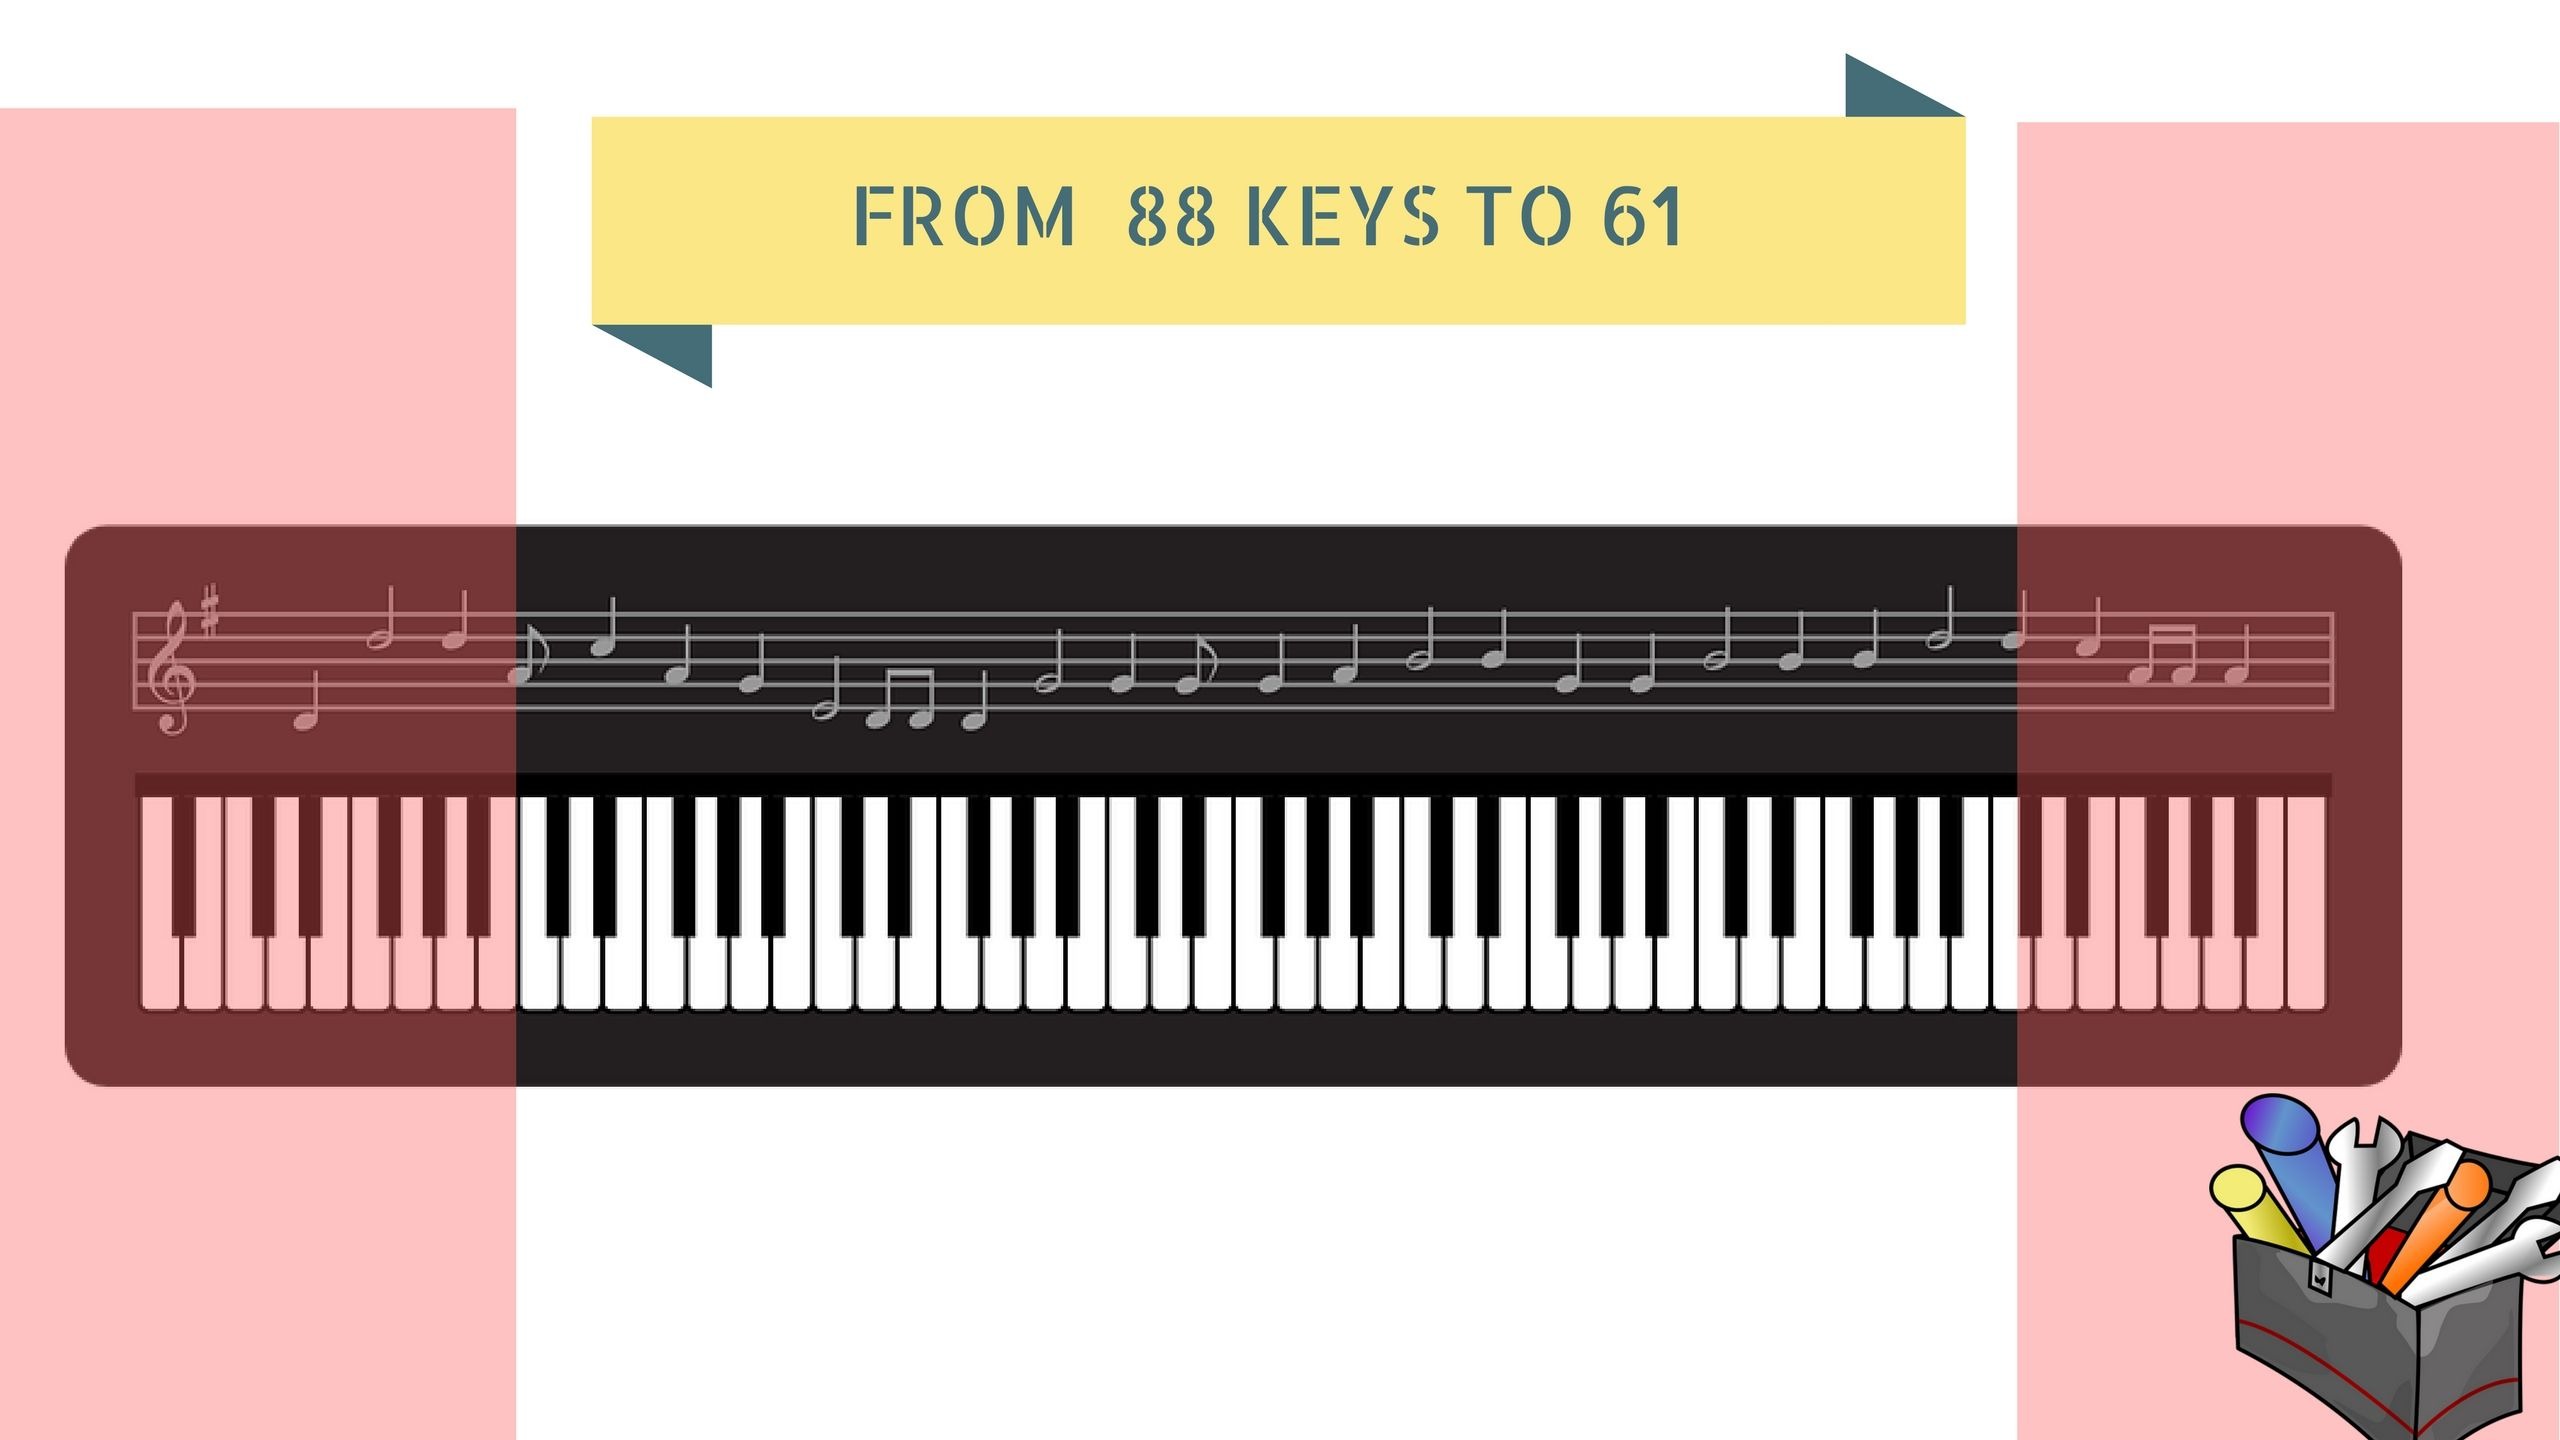 the Process of reducing the piano keys from 88 to 61. Same applies to the 71 key keyboard